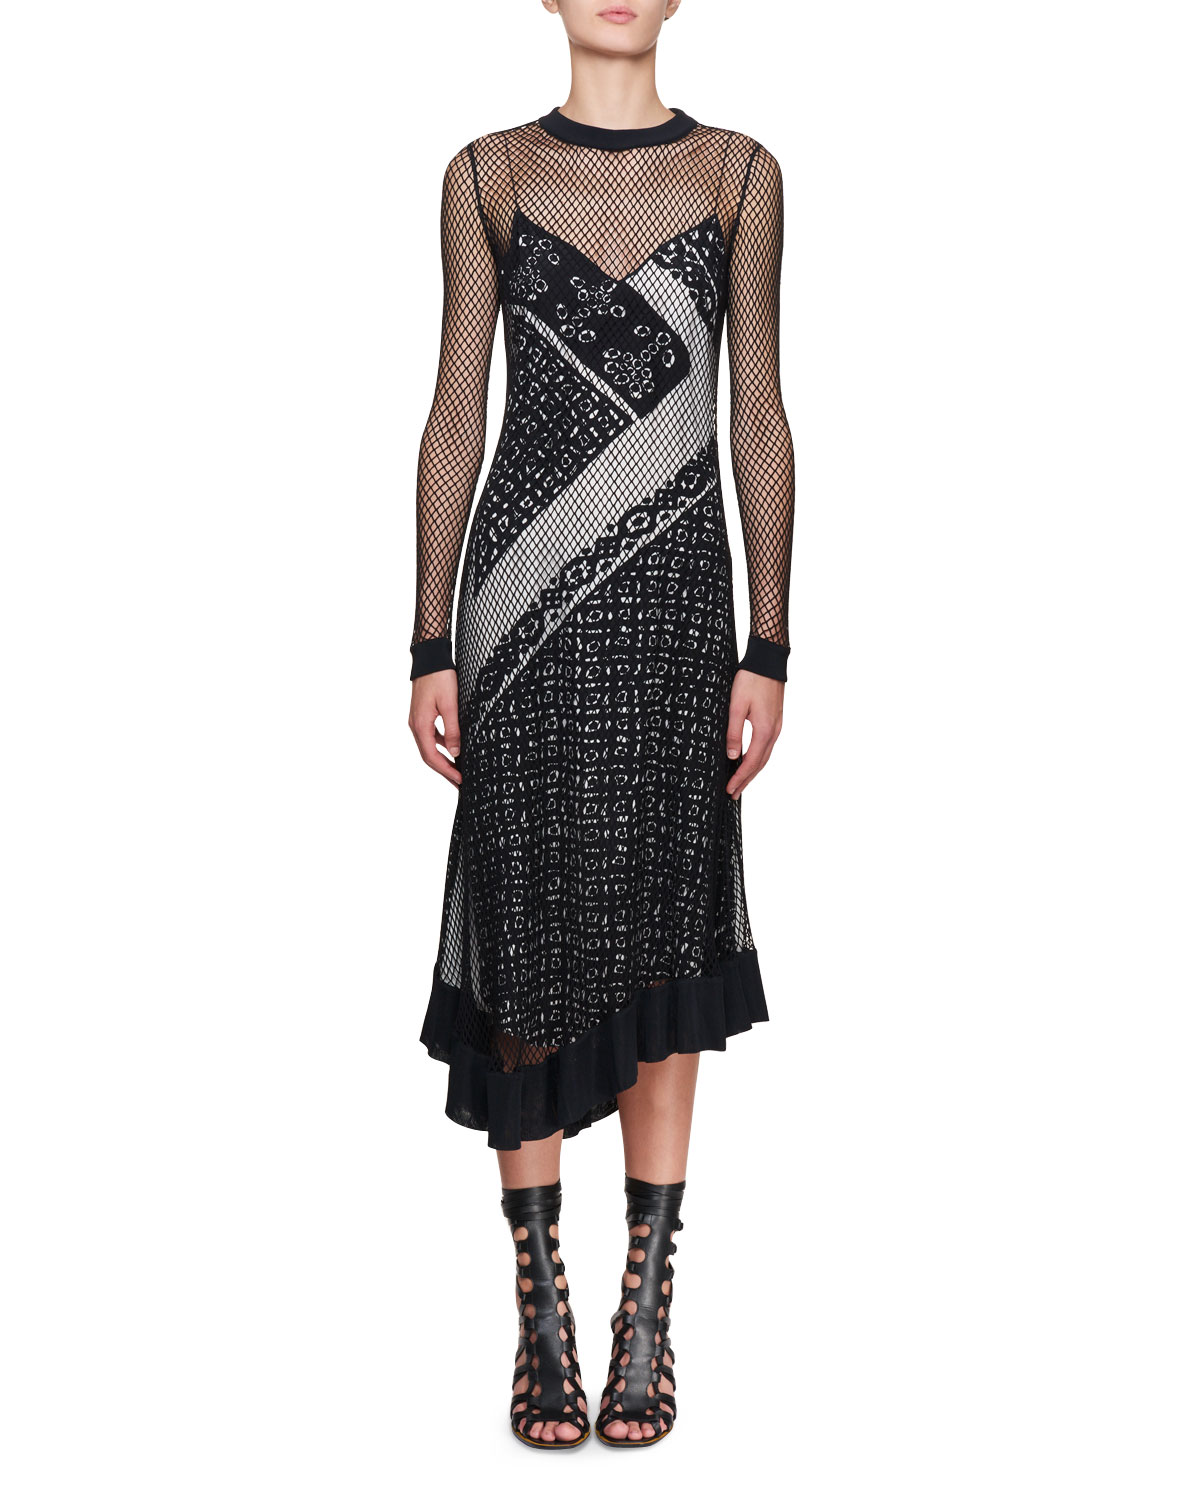 Altuzarra's Kleber fishnet long-sleeve bandana-print midi dress